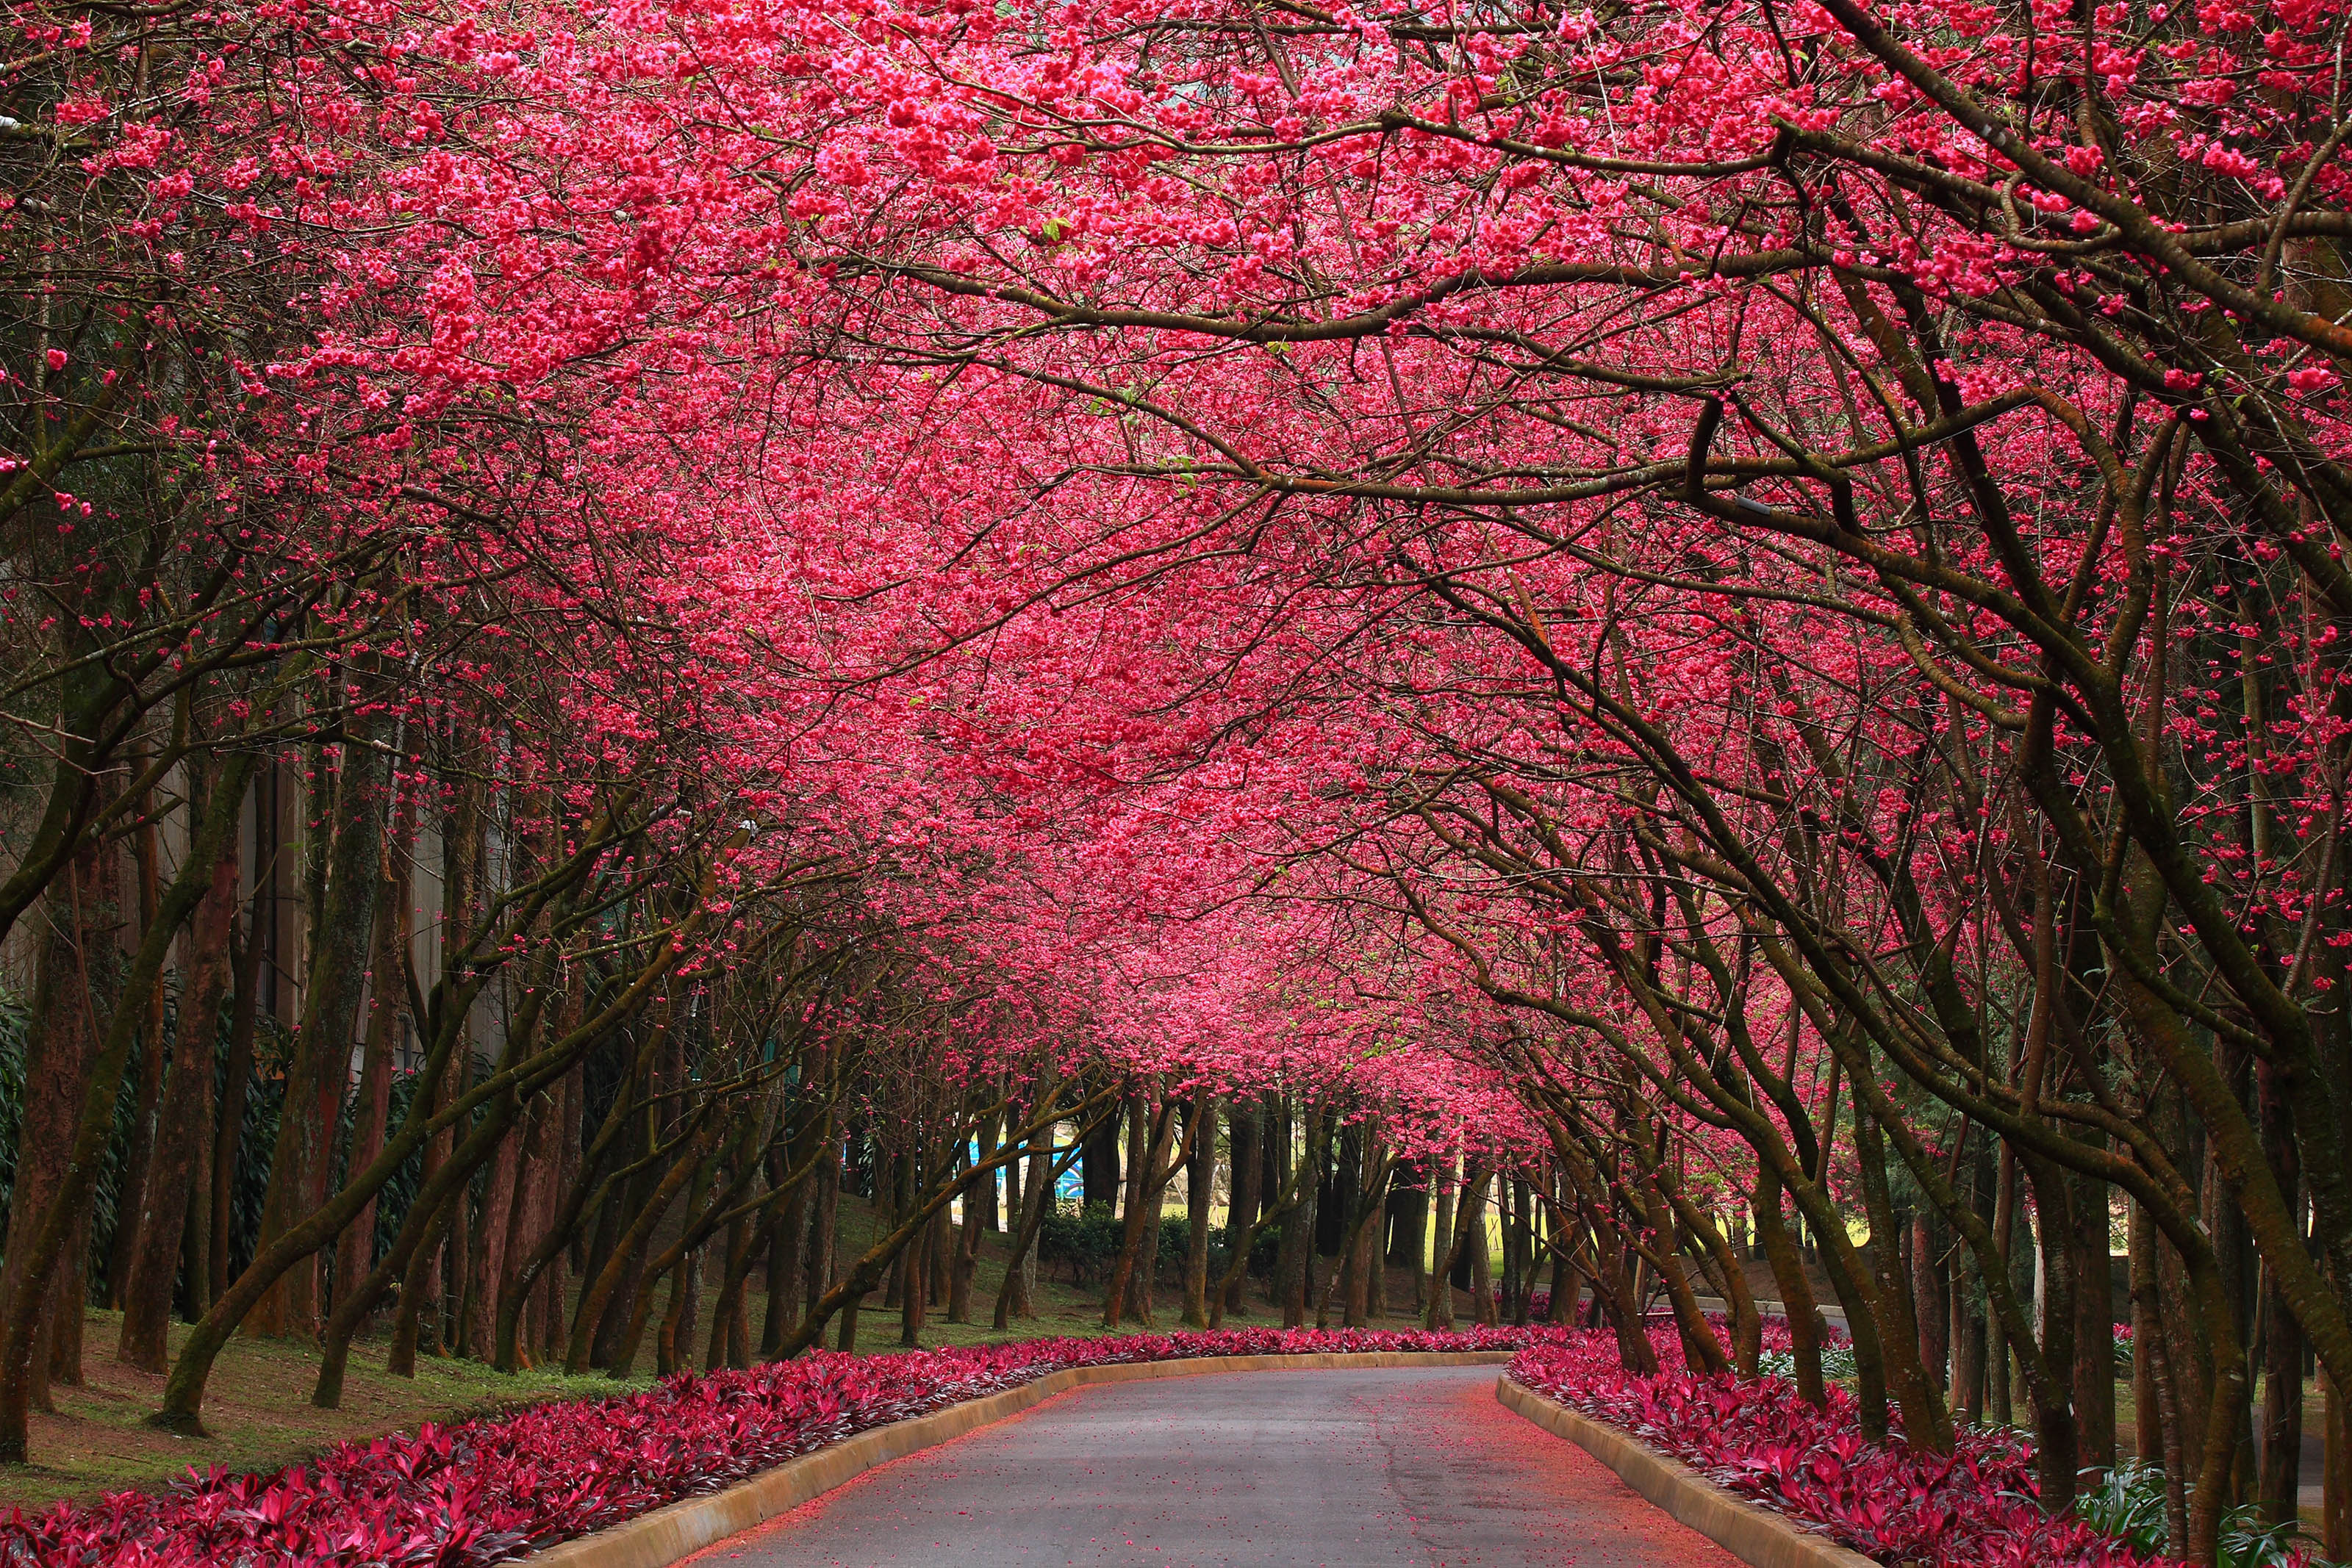 Pink nature wallpaper in hd with flowering trees in pink hd available downloads mightylinksfo